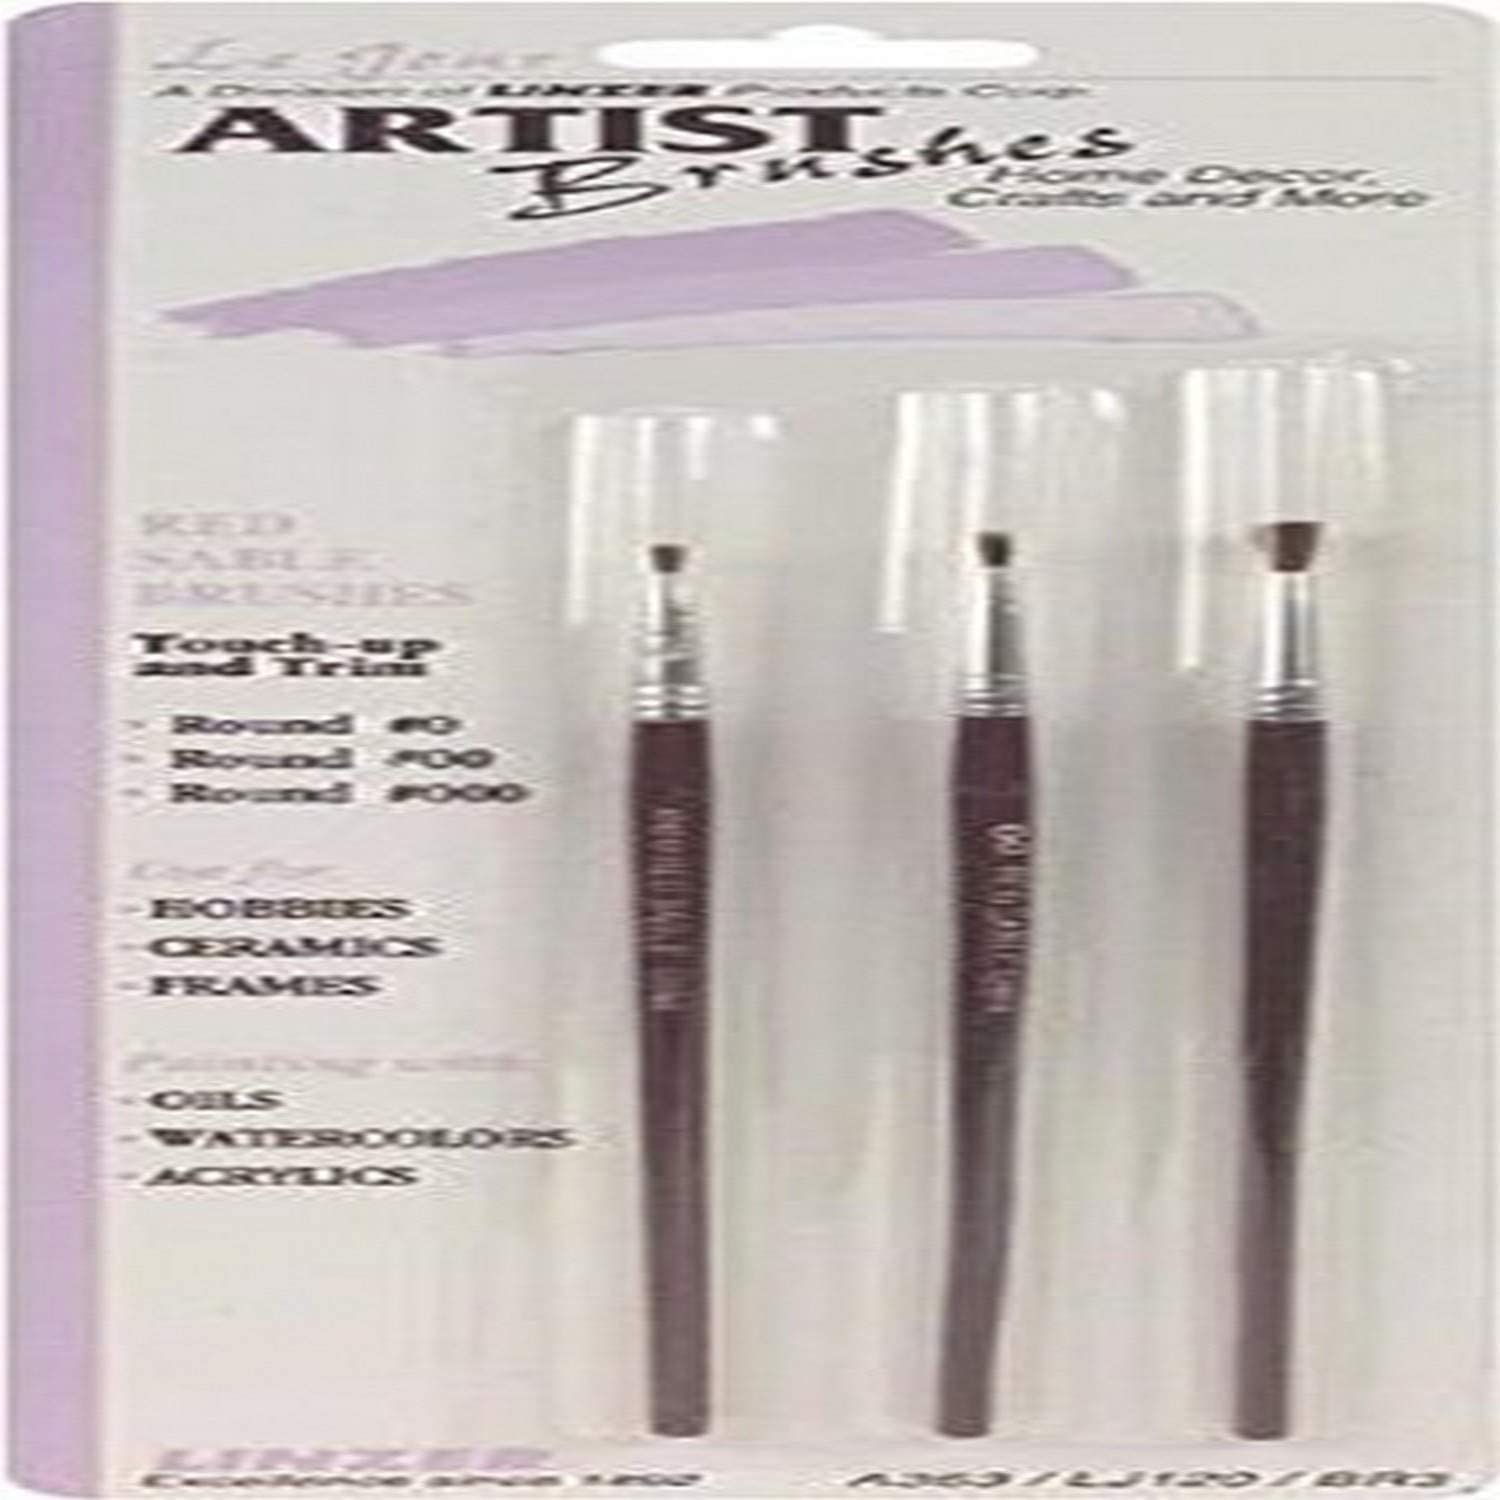 J.R. Edwards A363 Large-scale sale 3-Piece Red Set Sable Raleigh Mall Brush Artist